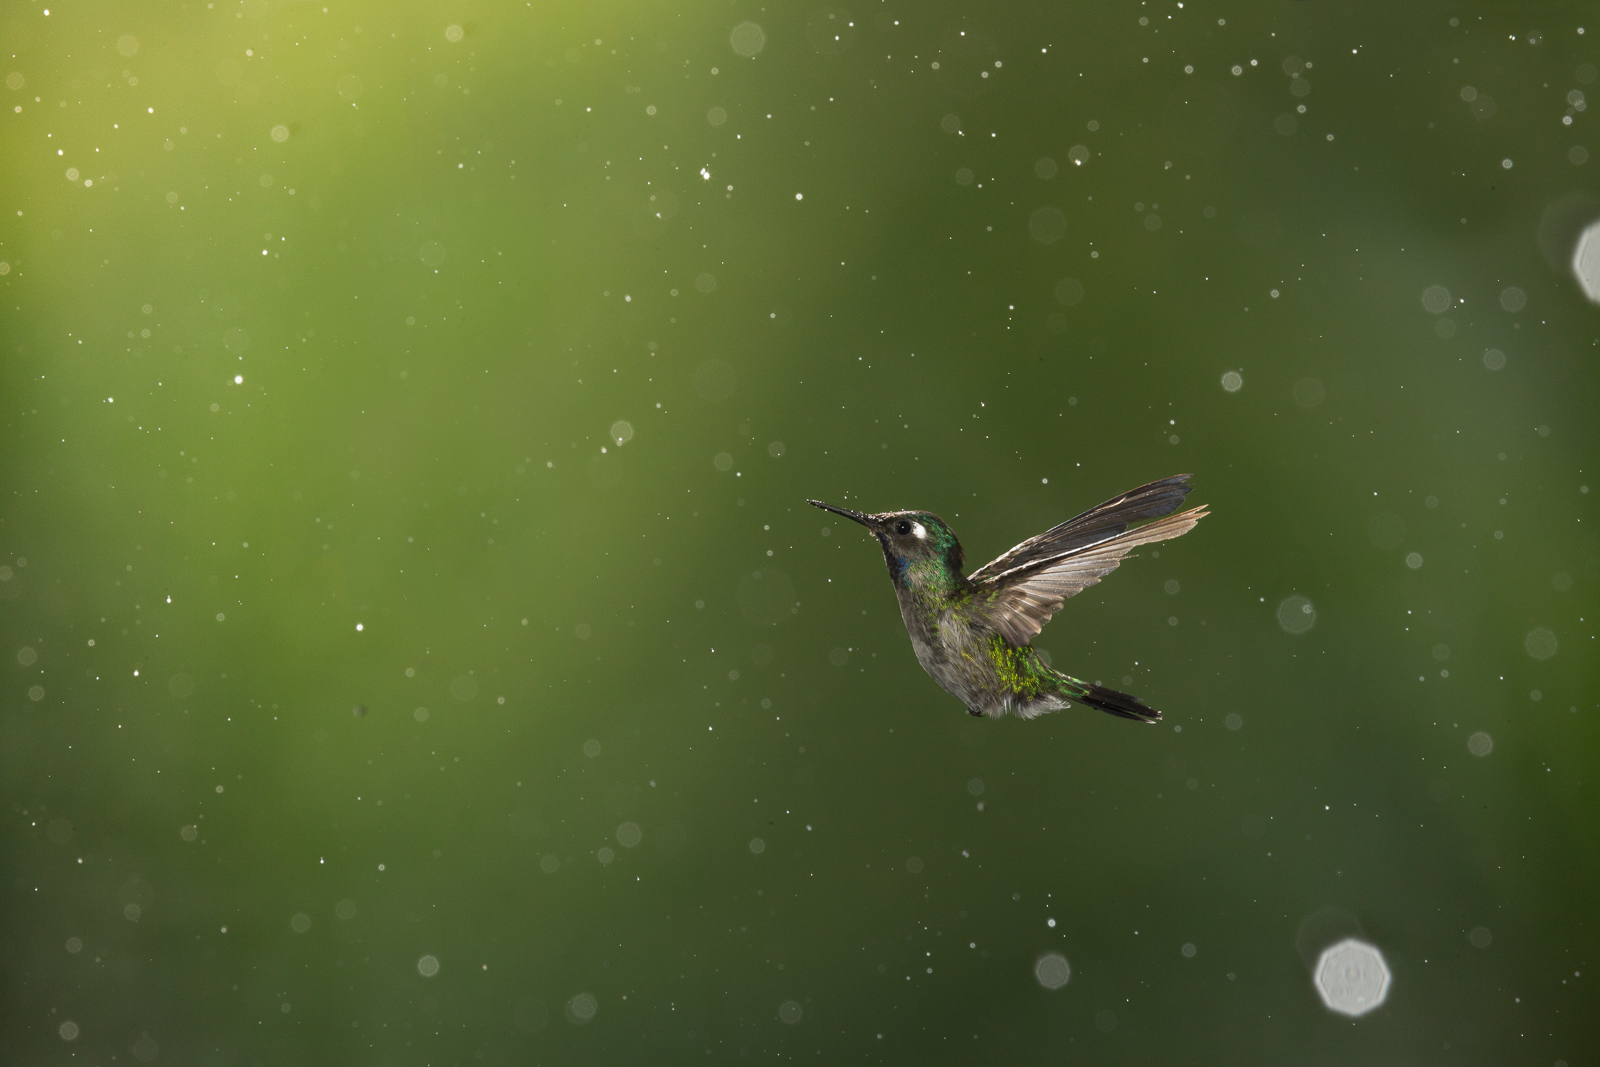 Violet-headed Hummingbird (Klais guimeti) flying through the rain at Braulio Carrillo National Park, at the lowlands of Costa Rica.